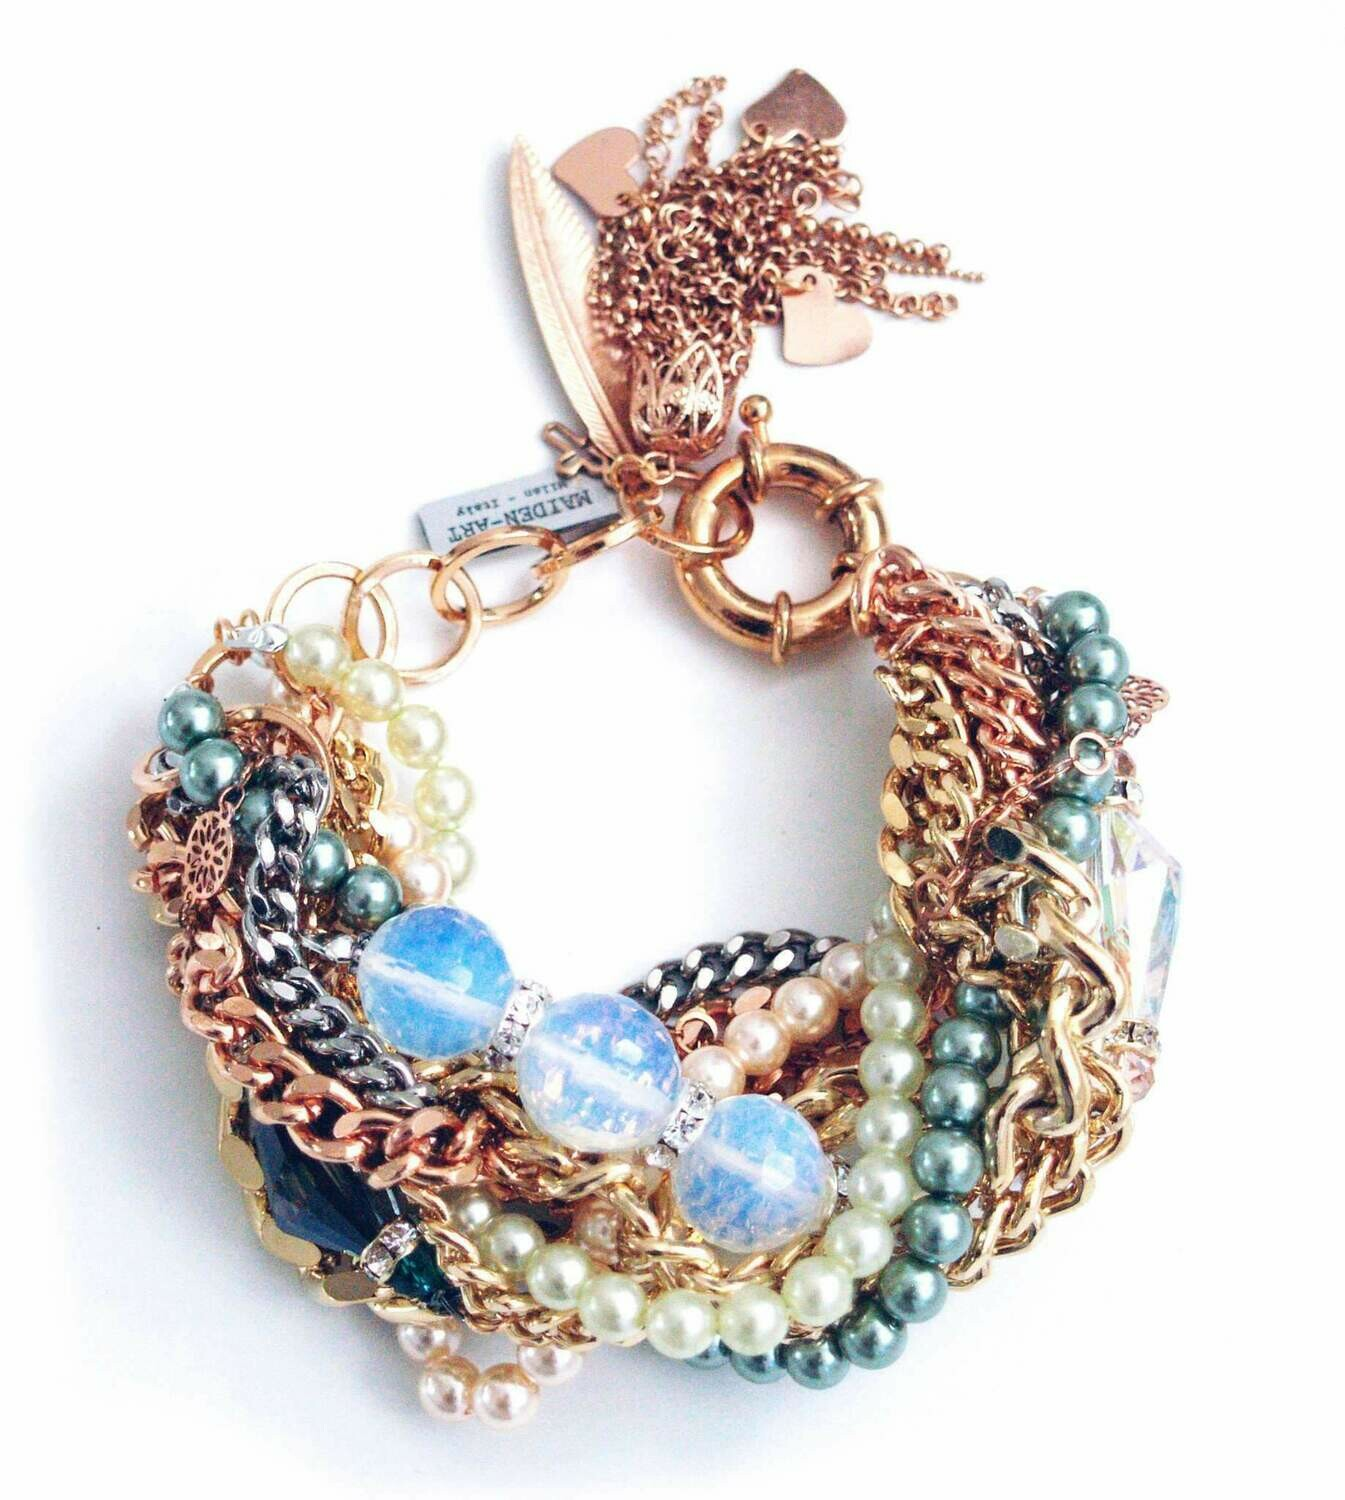 Statement Bracelet with Opal Stones and Charms